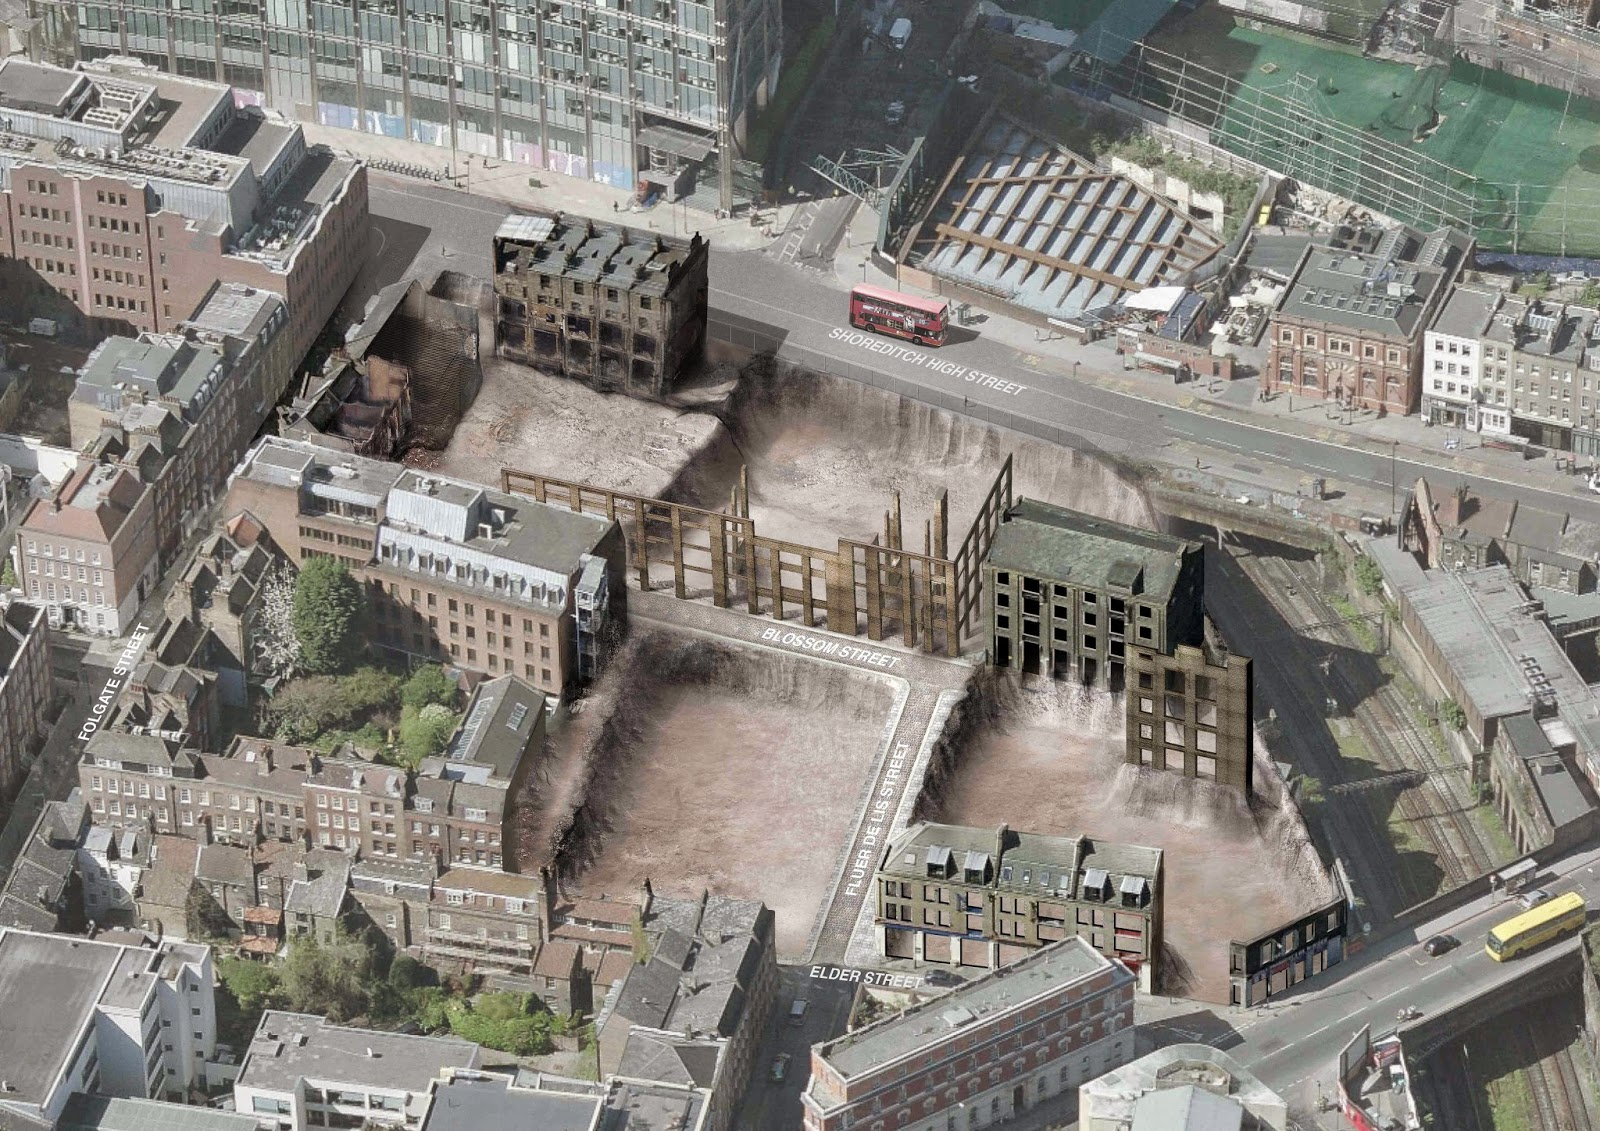 British Land want to remove over 70% of the fabric on their site in the Elder St Conservation Area